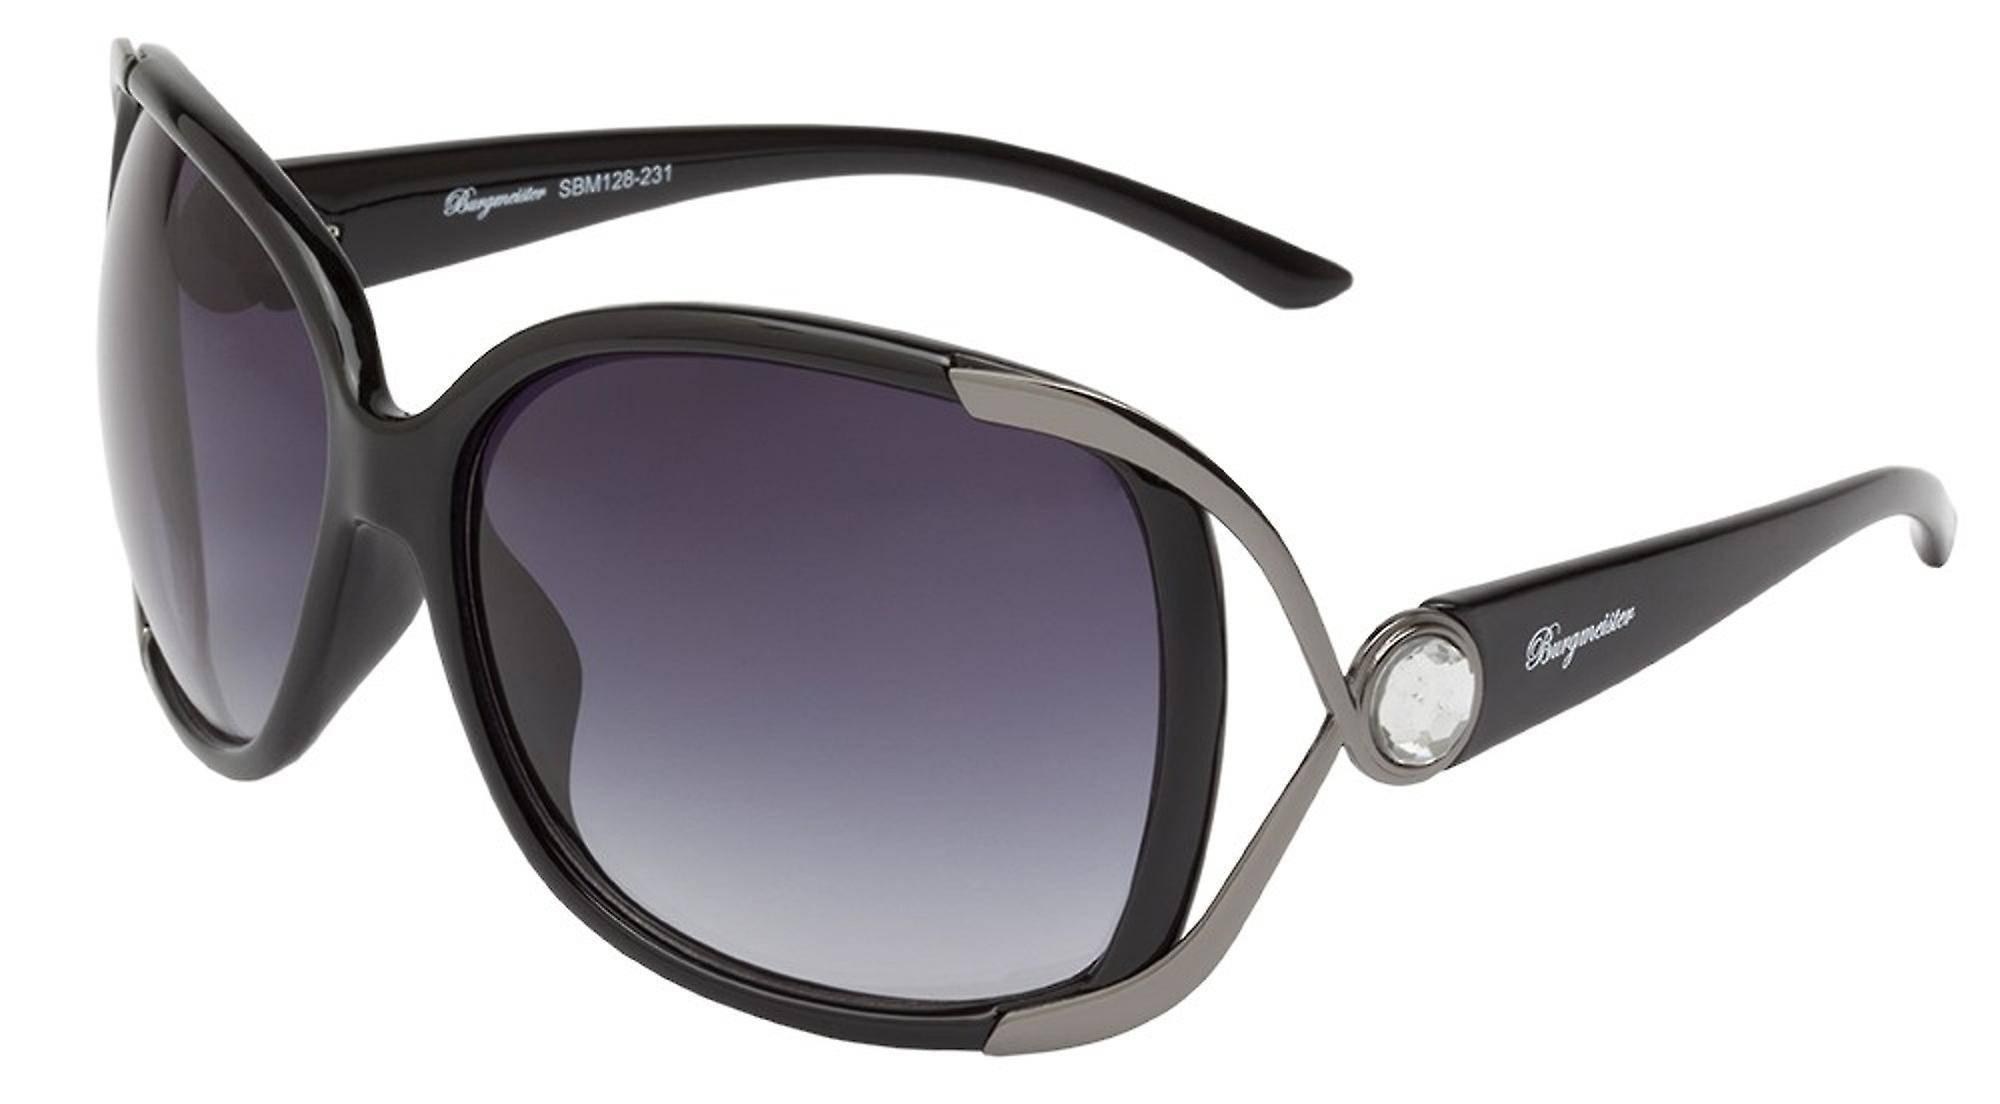 Burgmeister Elegant sunglasses for women by Burgmeister with 100% UV protection...